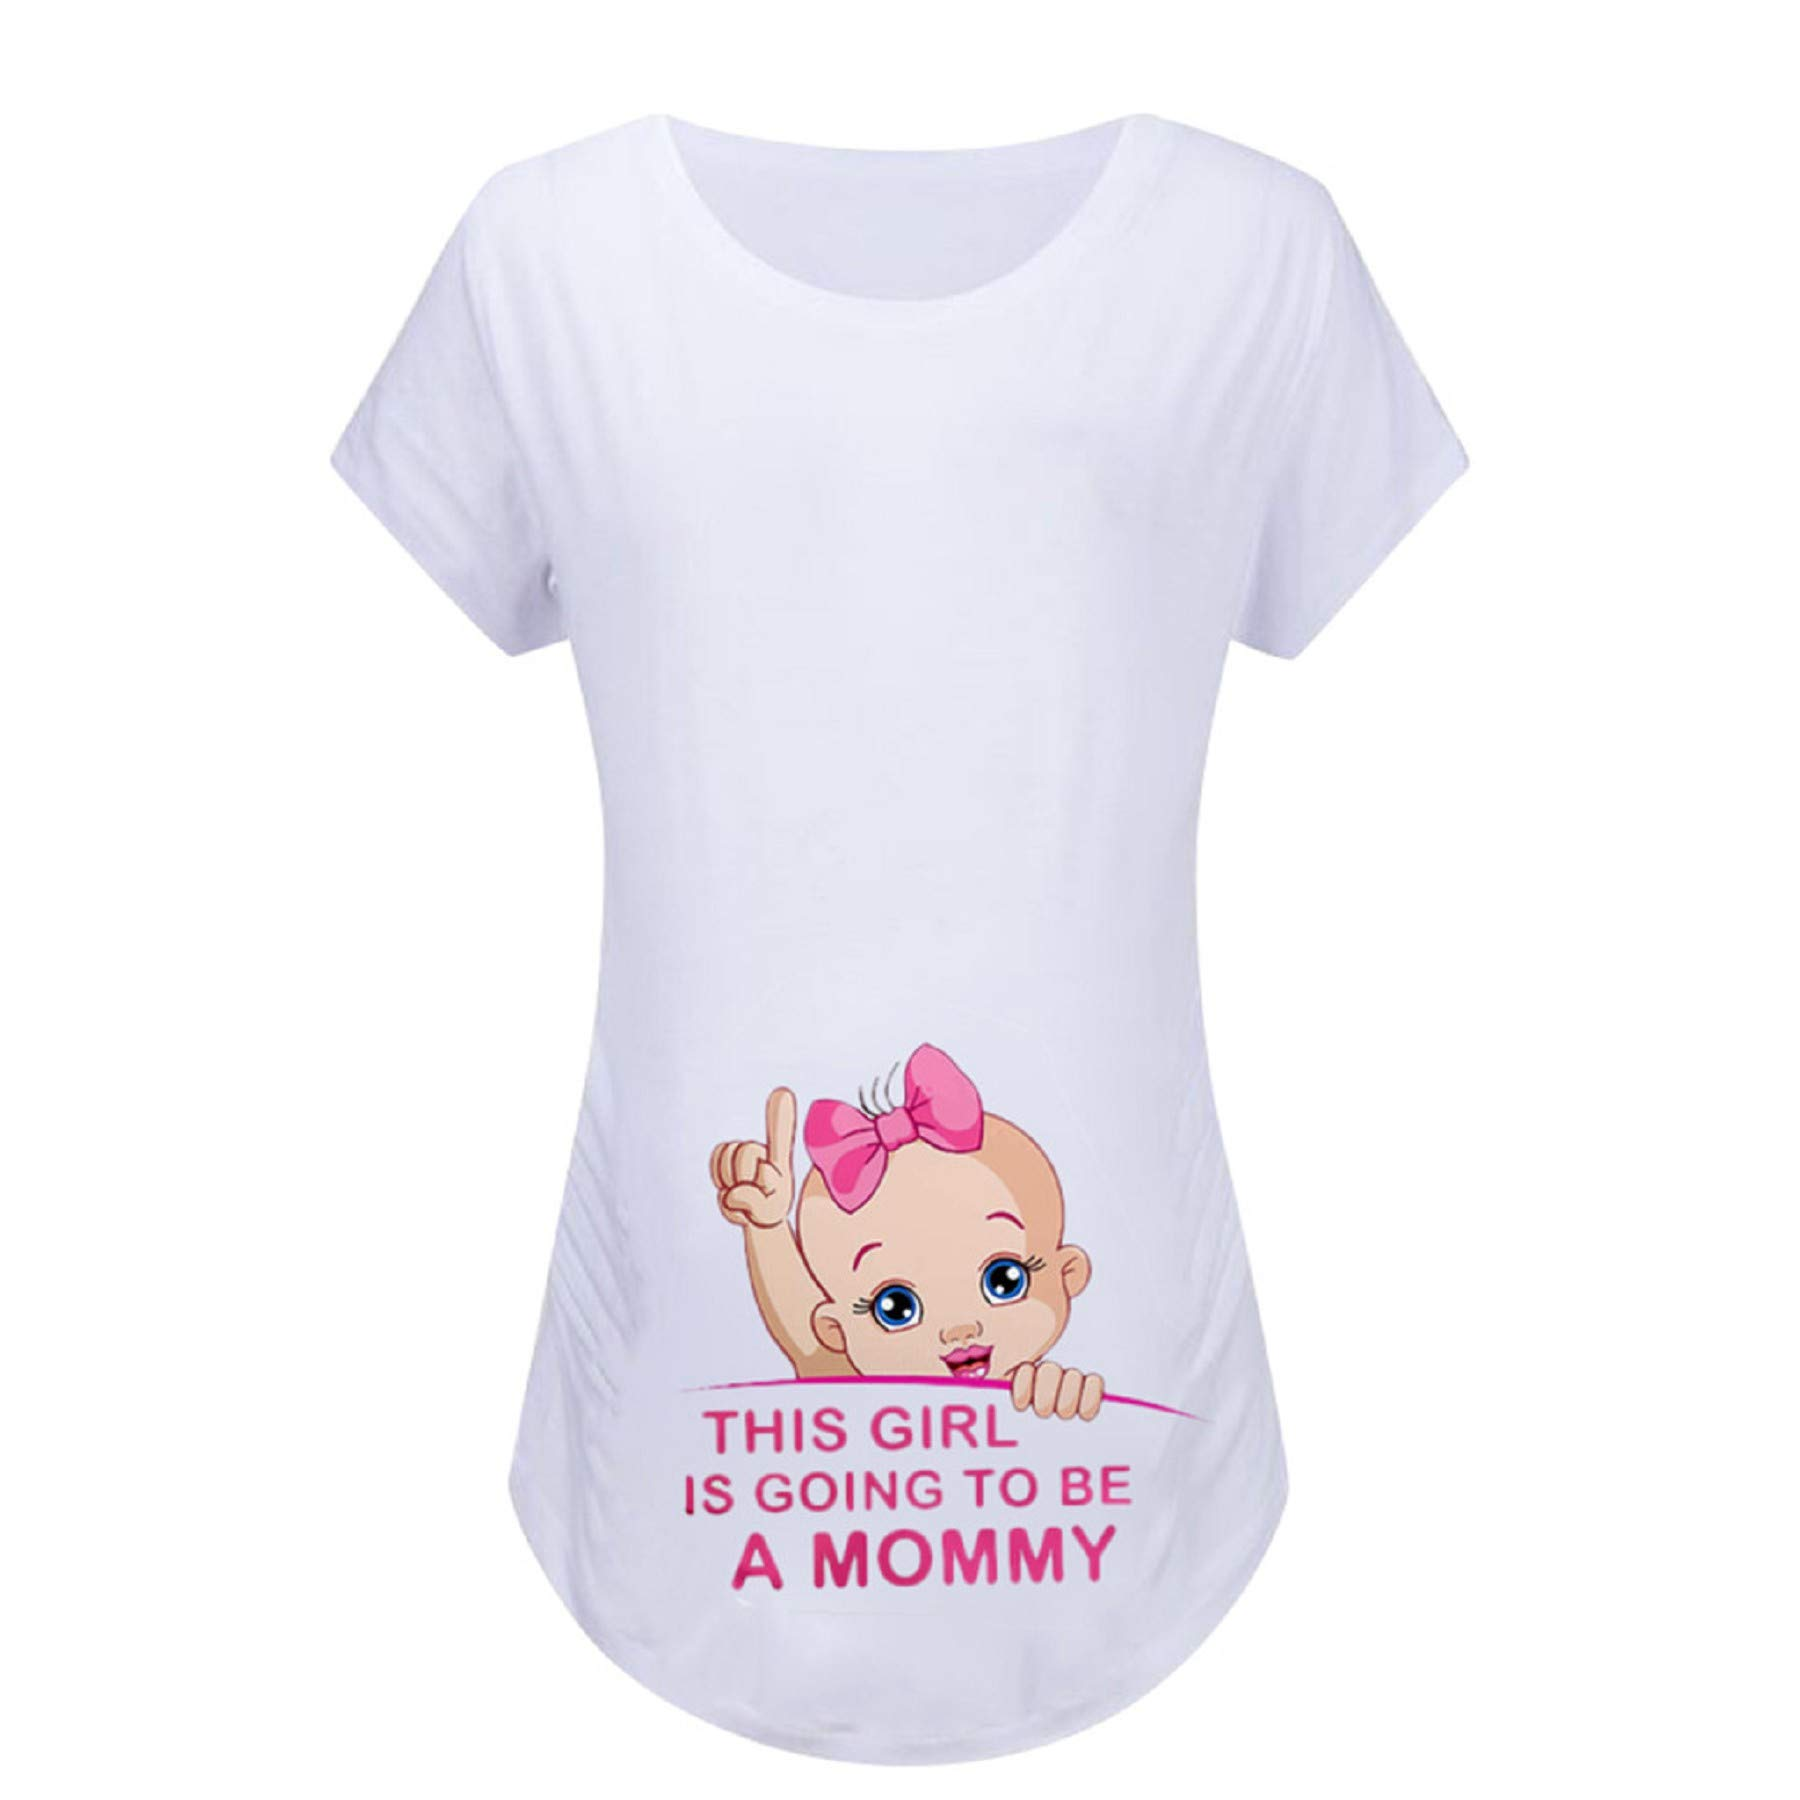 2019 Women's Funny Graphic Pregnancy T Shirt Casual Comfy Modal Short Sleeve Baby Boy Girl Printed Maternity Tops Red